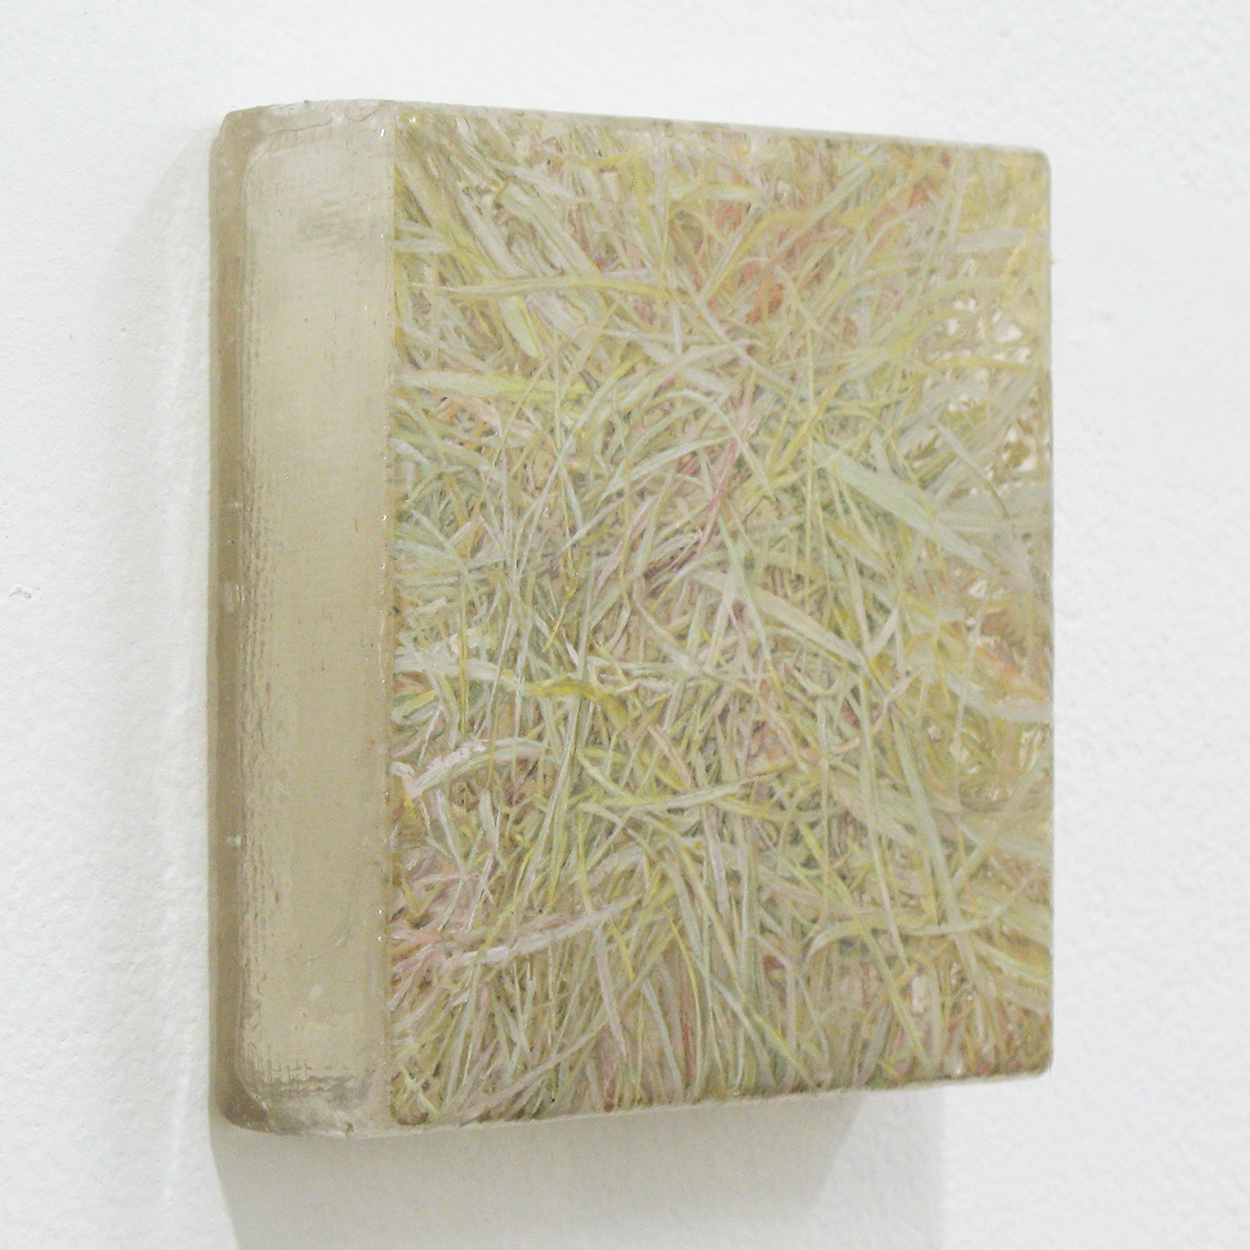 Photo painting 「草上の手触り」11・4|11 x 11cm|Oil on FRP panel|2011